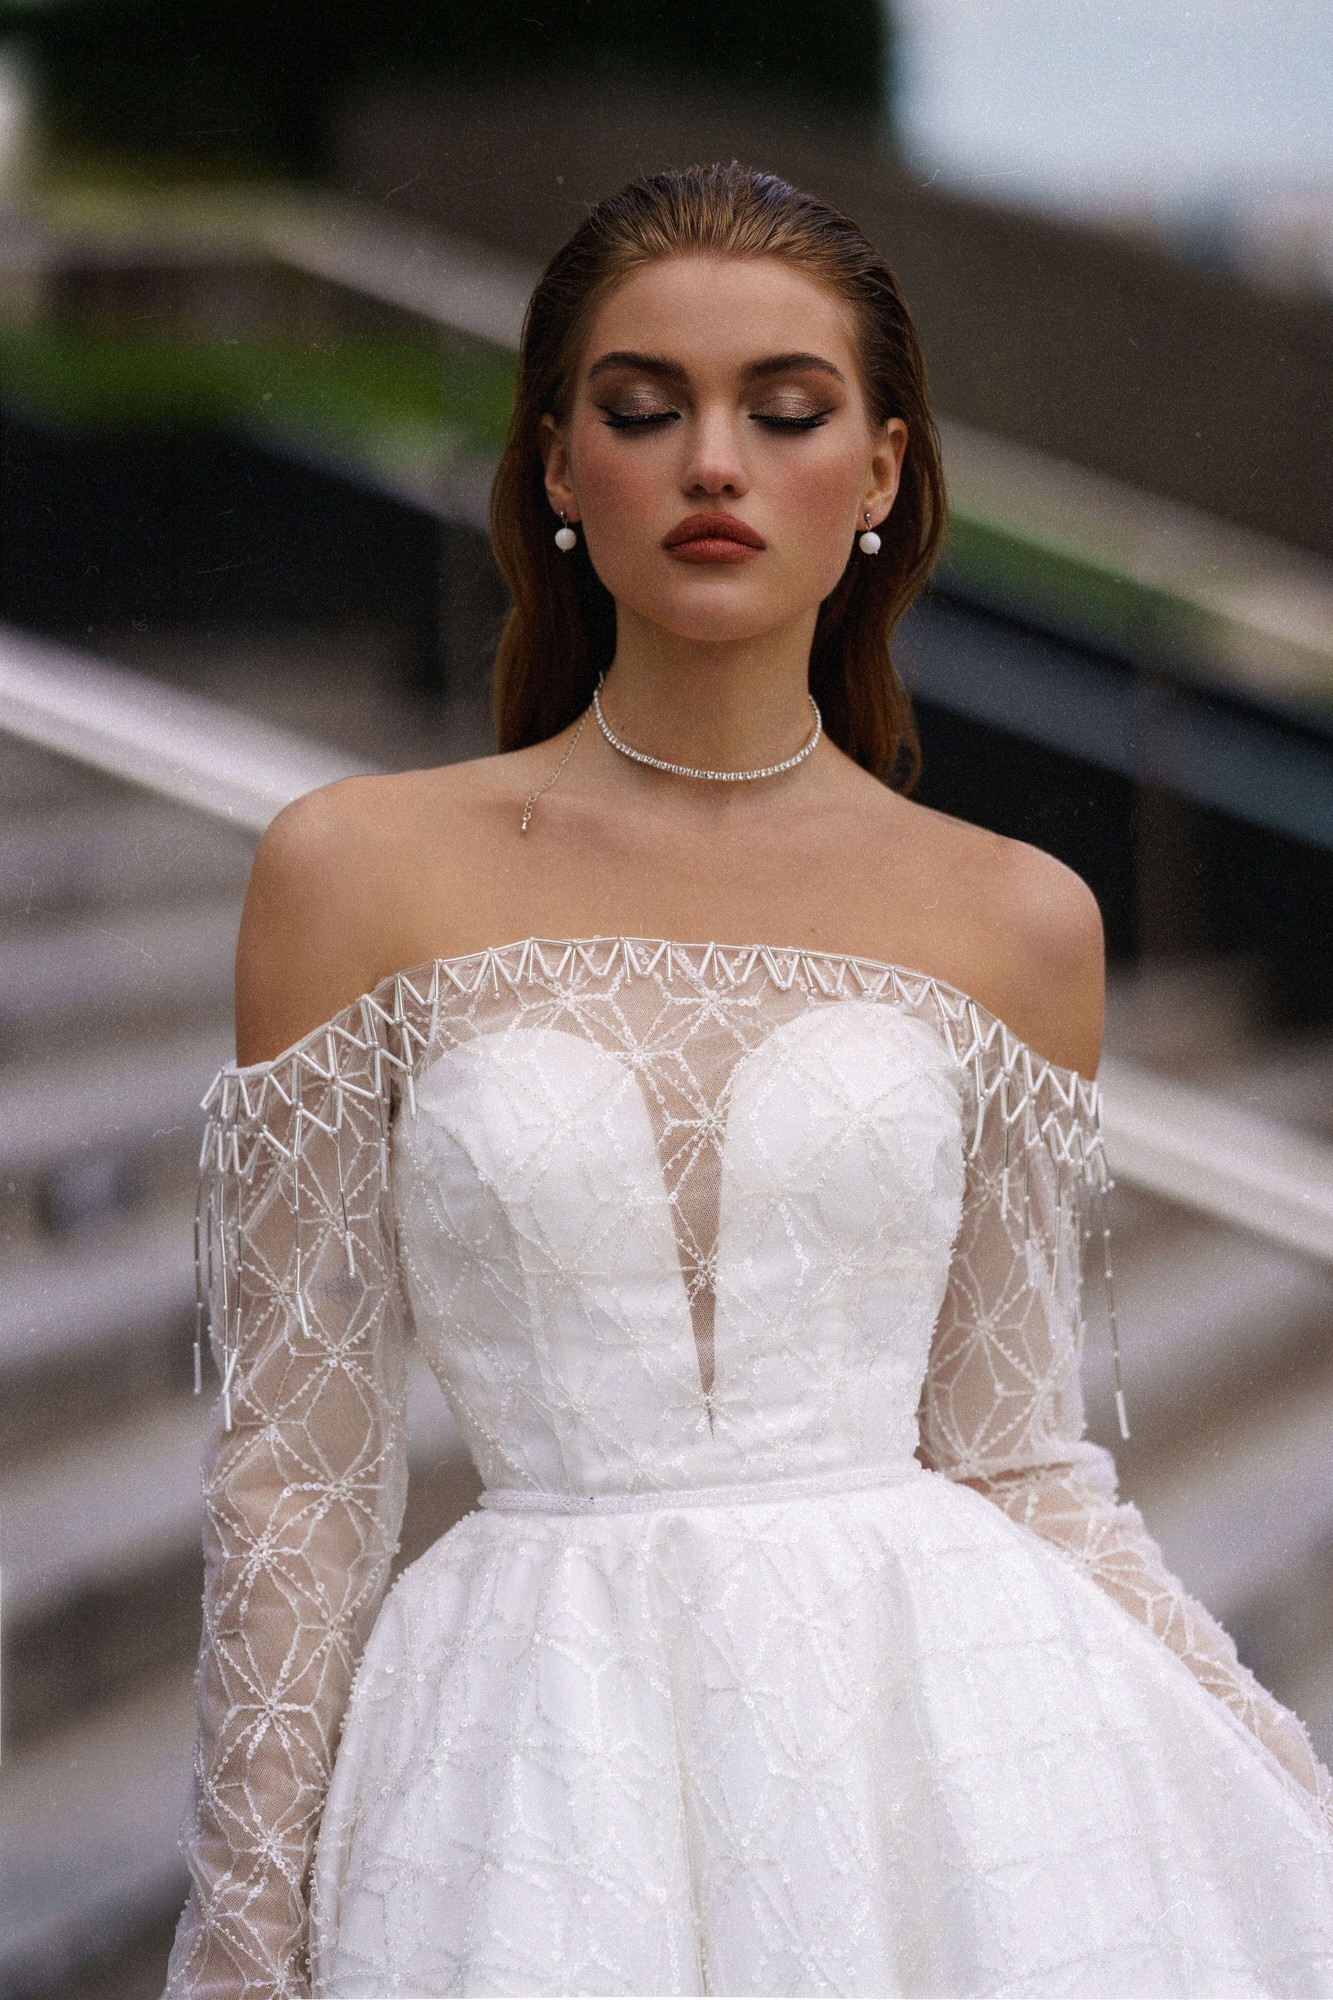 Ippi from the Oh My Bride! Collection by Rara Avis